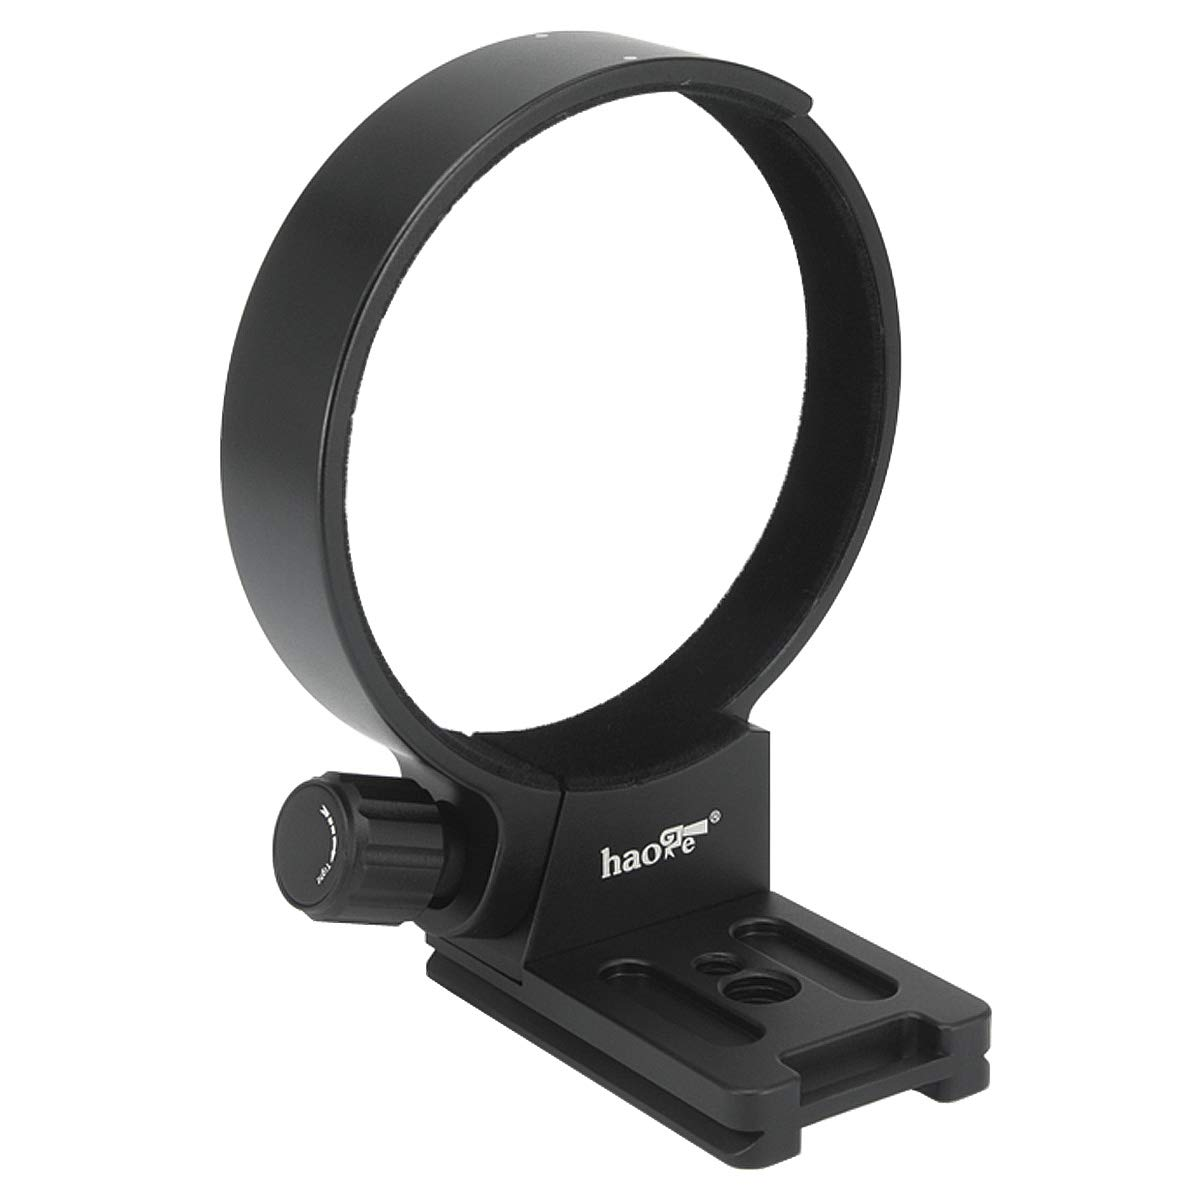 Haoge LMR-SM140 Lens Collar Replacement Foot Tripod Mount Ring Socket Stand Base for Sigma 100-400mm f/5-6.3 DG OS HSM Contemporary Lens Built-in Arca Type Quick Release Plate by Haoge